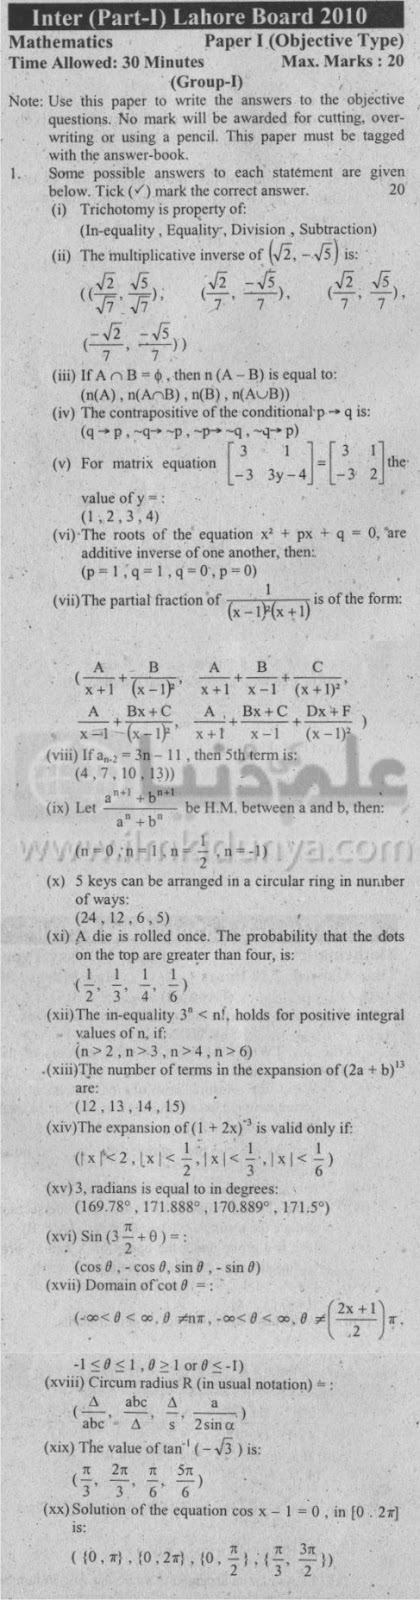 Inter Part I Mathematics Objective Paper I Group I Lahore Board 2010